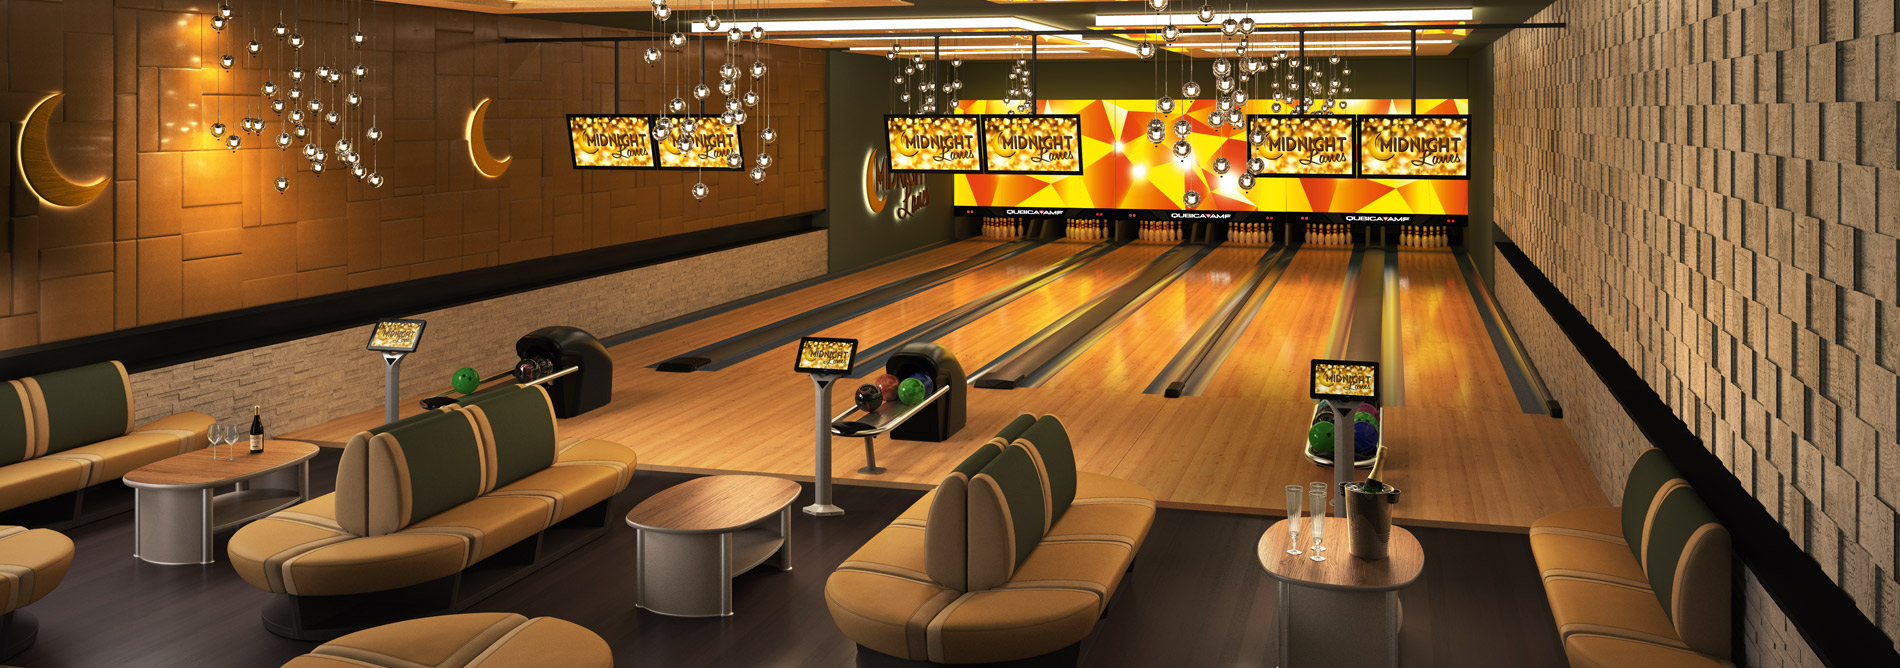 Bowling-QubicaAMF-Furniture-and-Design.jpg